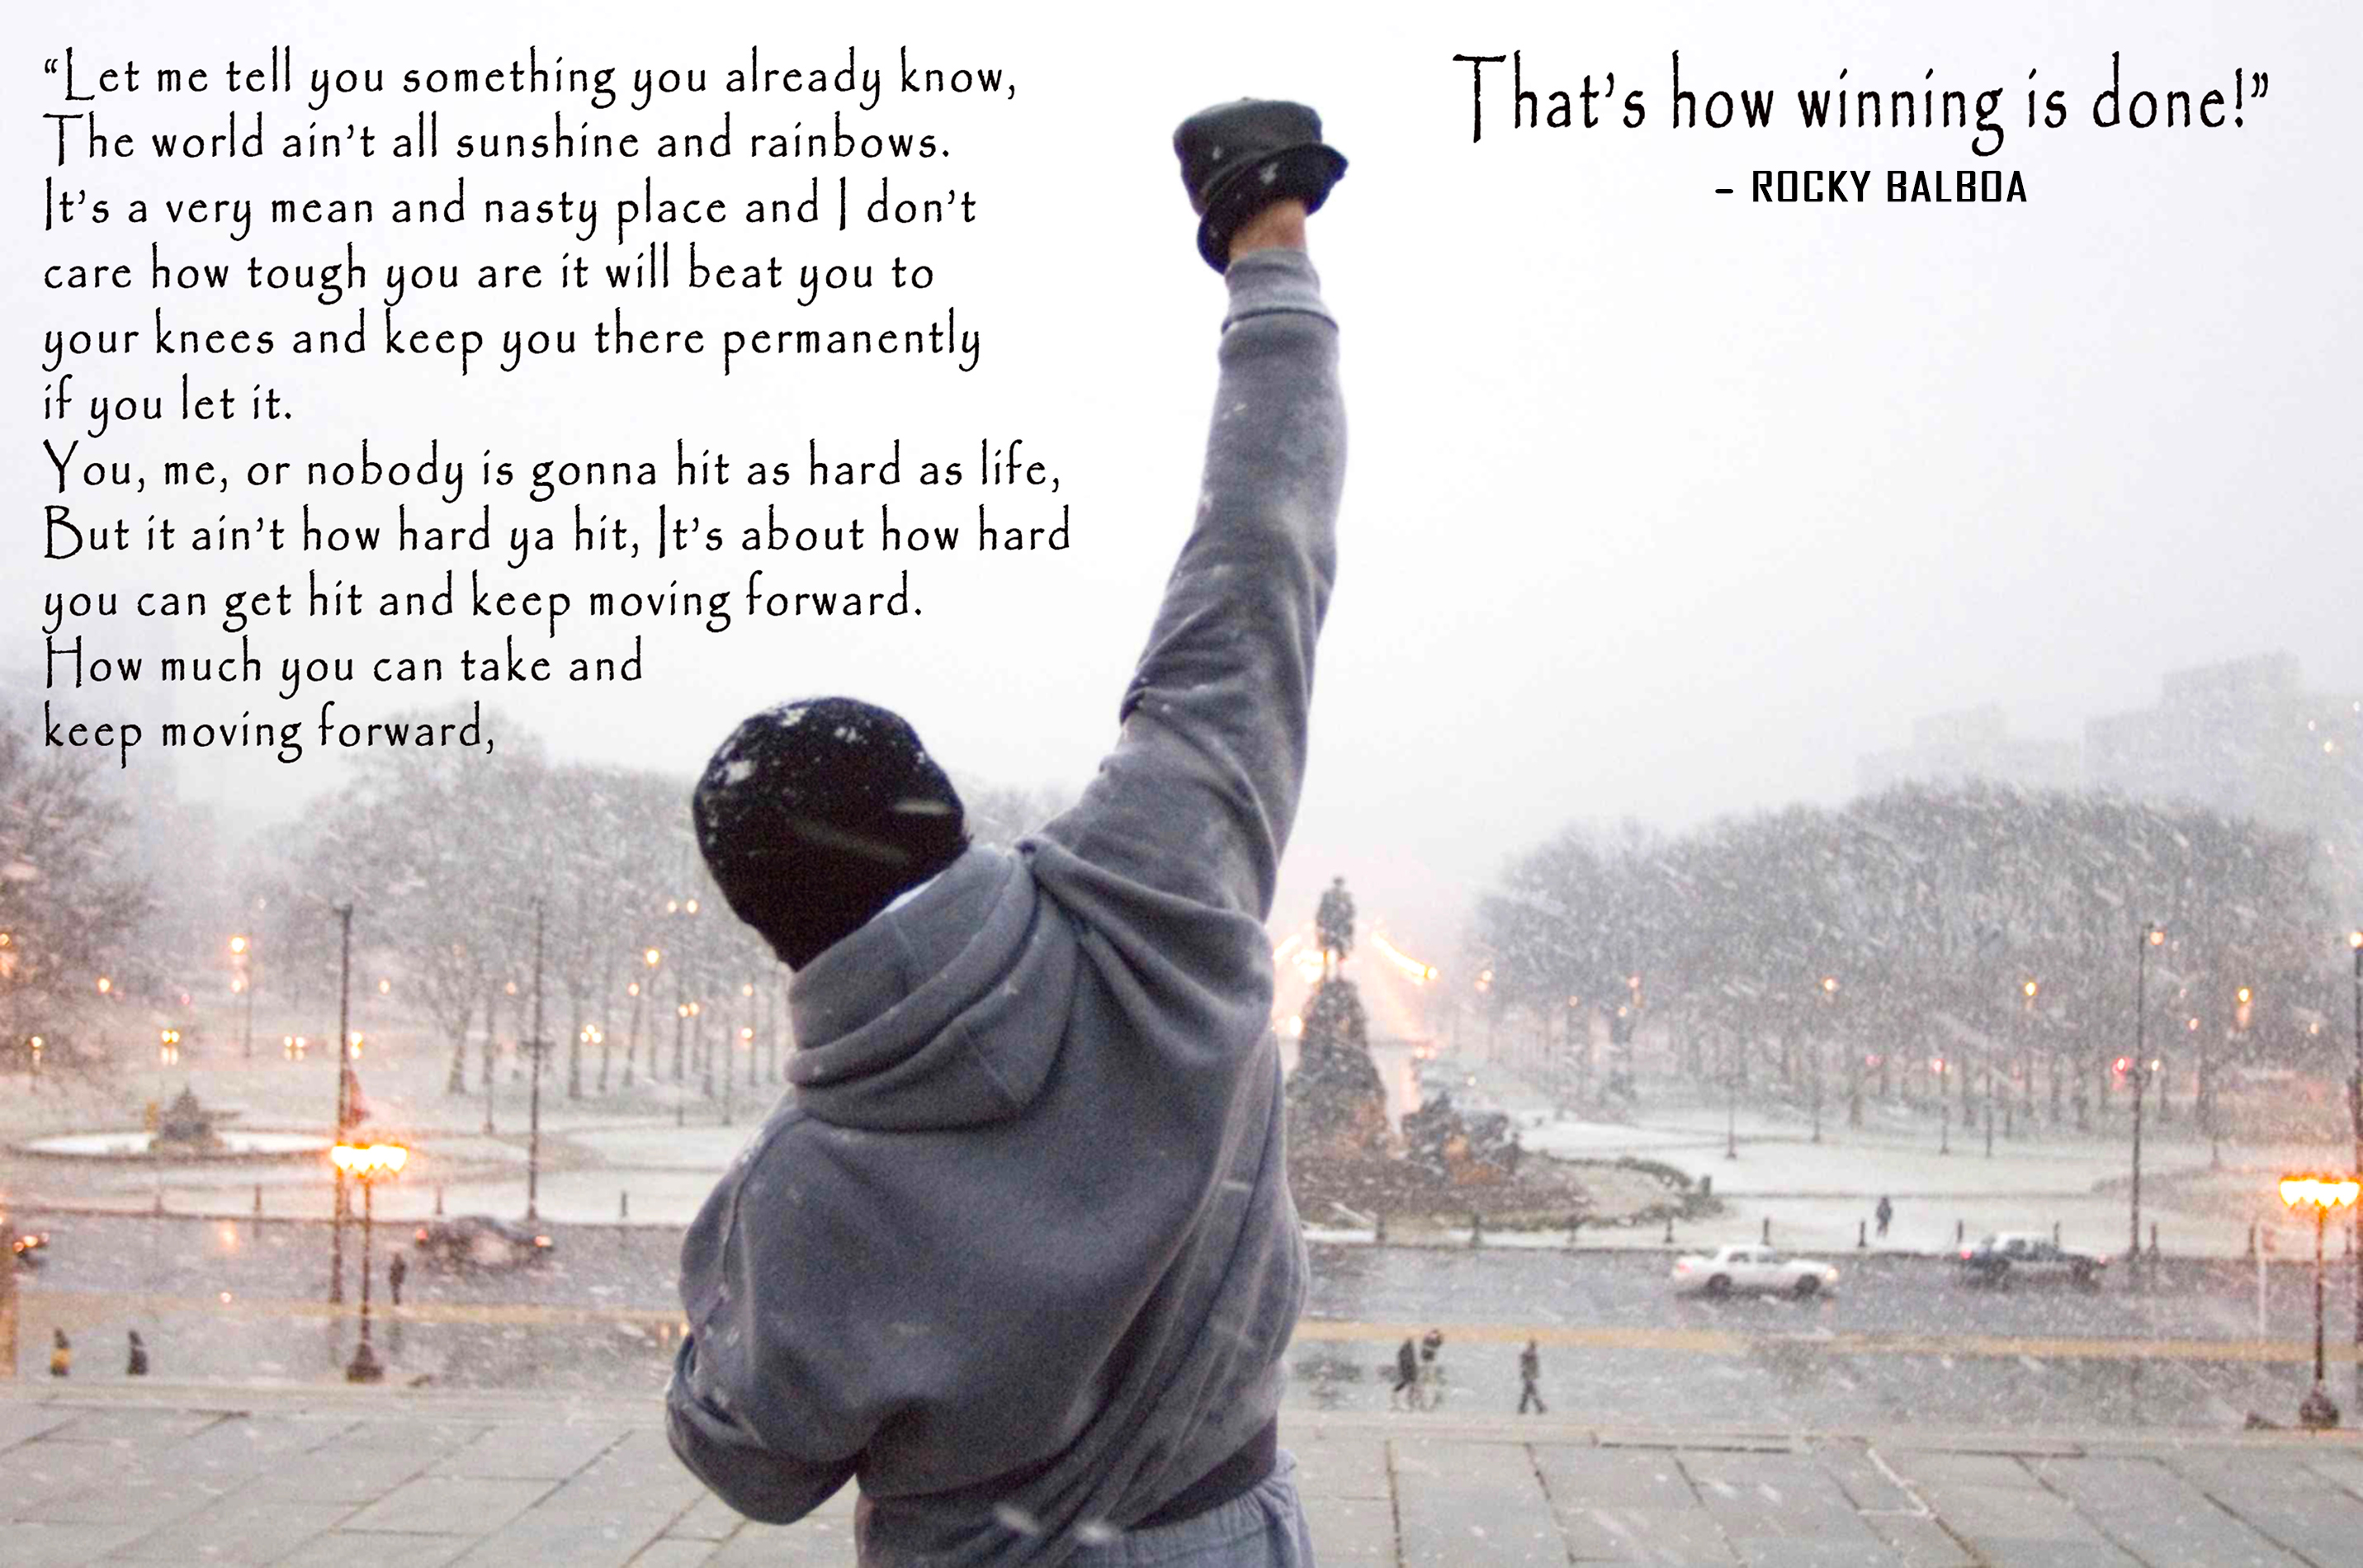 ROCKY BALBOA GYM QUOTE CANVAS WALL ART PICTURE A4 A3 A2 A1 PRINT READY TO HANG